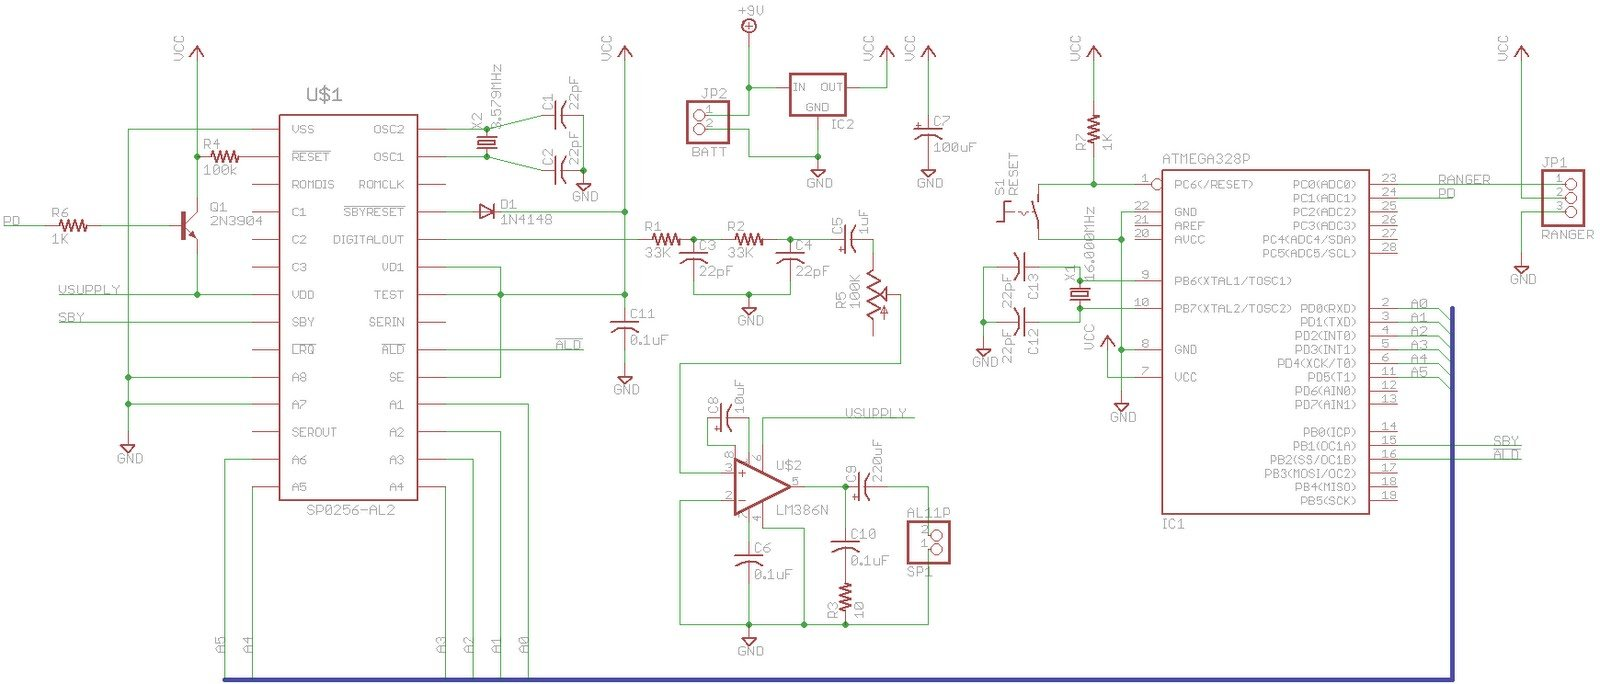 SP0256-AL2 Speech With Arduino Schematic